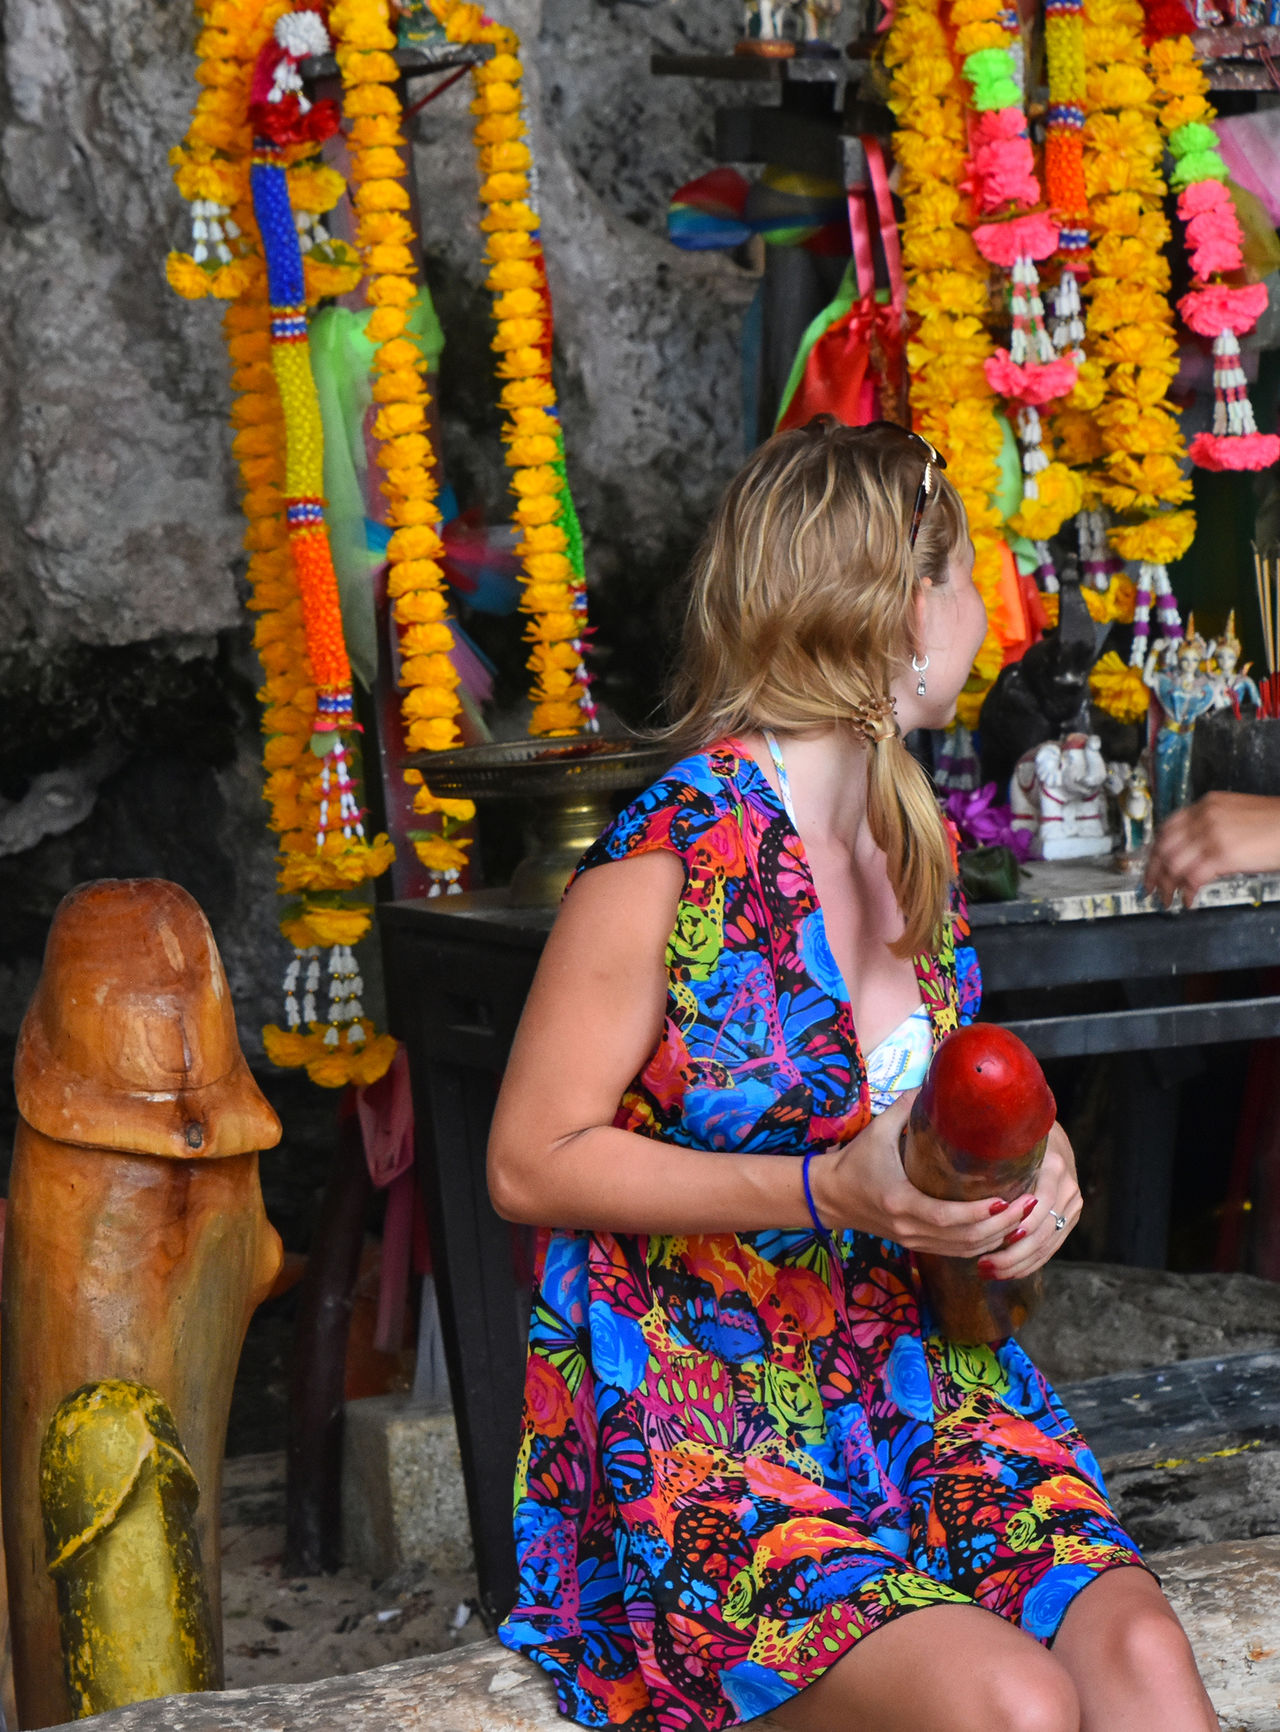 Irreverent tourists pose with wooden sacred religious attributes in front of cameras at Princess Cave shrine temple, Railay, Krabi, Thailnd, September 2015 Church Dishonor DISRESPECT Disrespectful  Irreverent Krabi Krabi Thailand Lack Of Culture Phranang Phranang Cave Pose Poser Posing Posing For The Camera Princess Cave Profanity Russian Srine Temple Thailand Tourists Telling Stories Differently